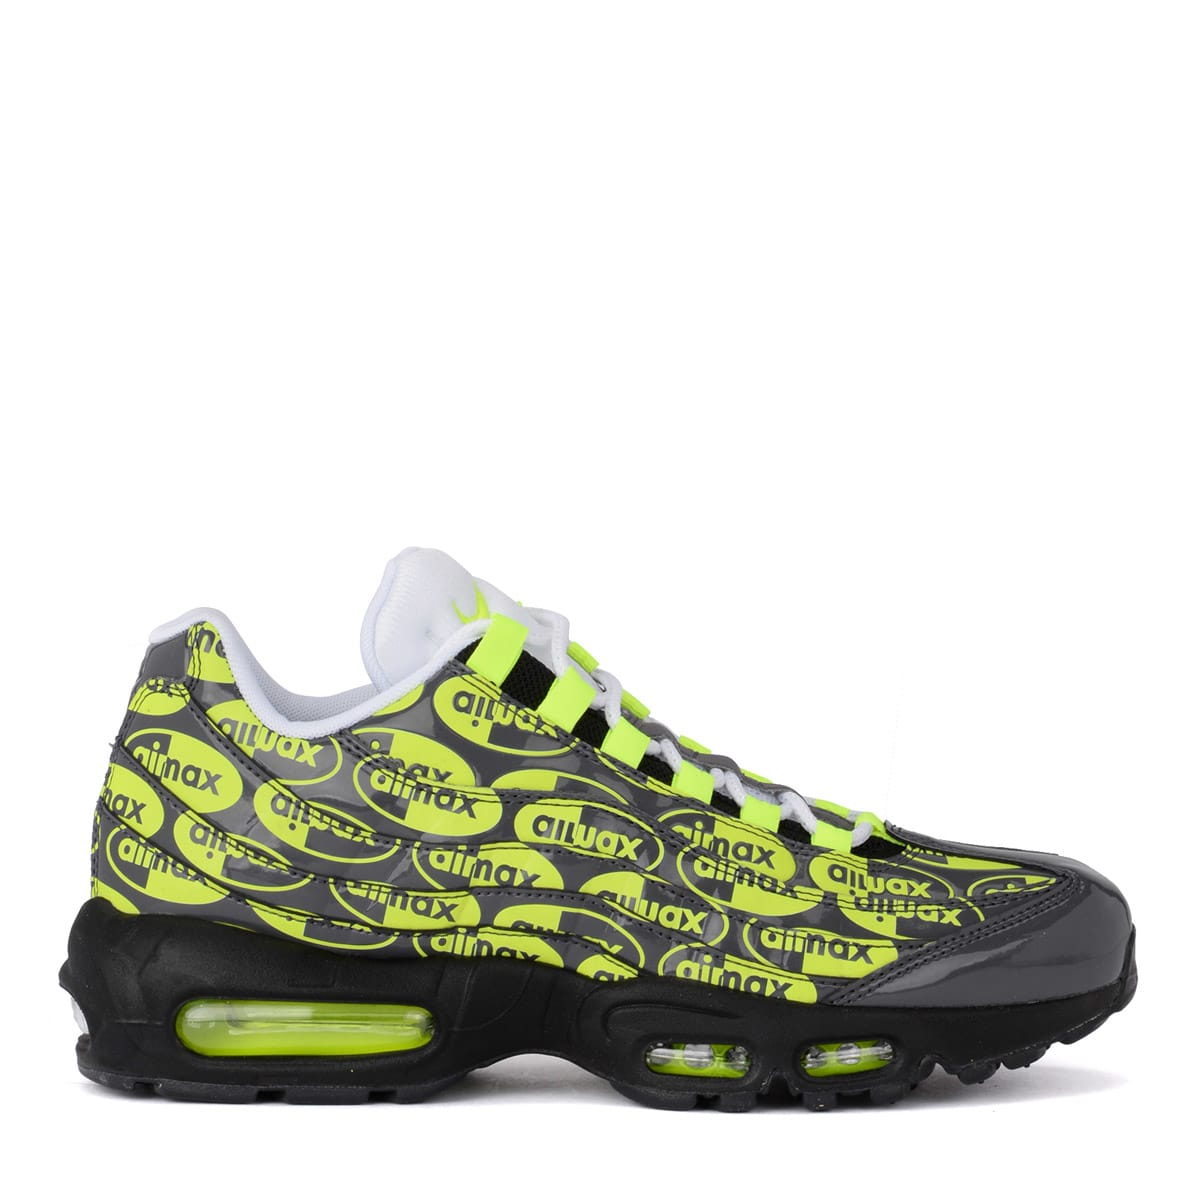 nouveau style e6e09 ed5e4 Nike Air Max 95 Grey Leather Sneaker With Fluo Print.